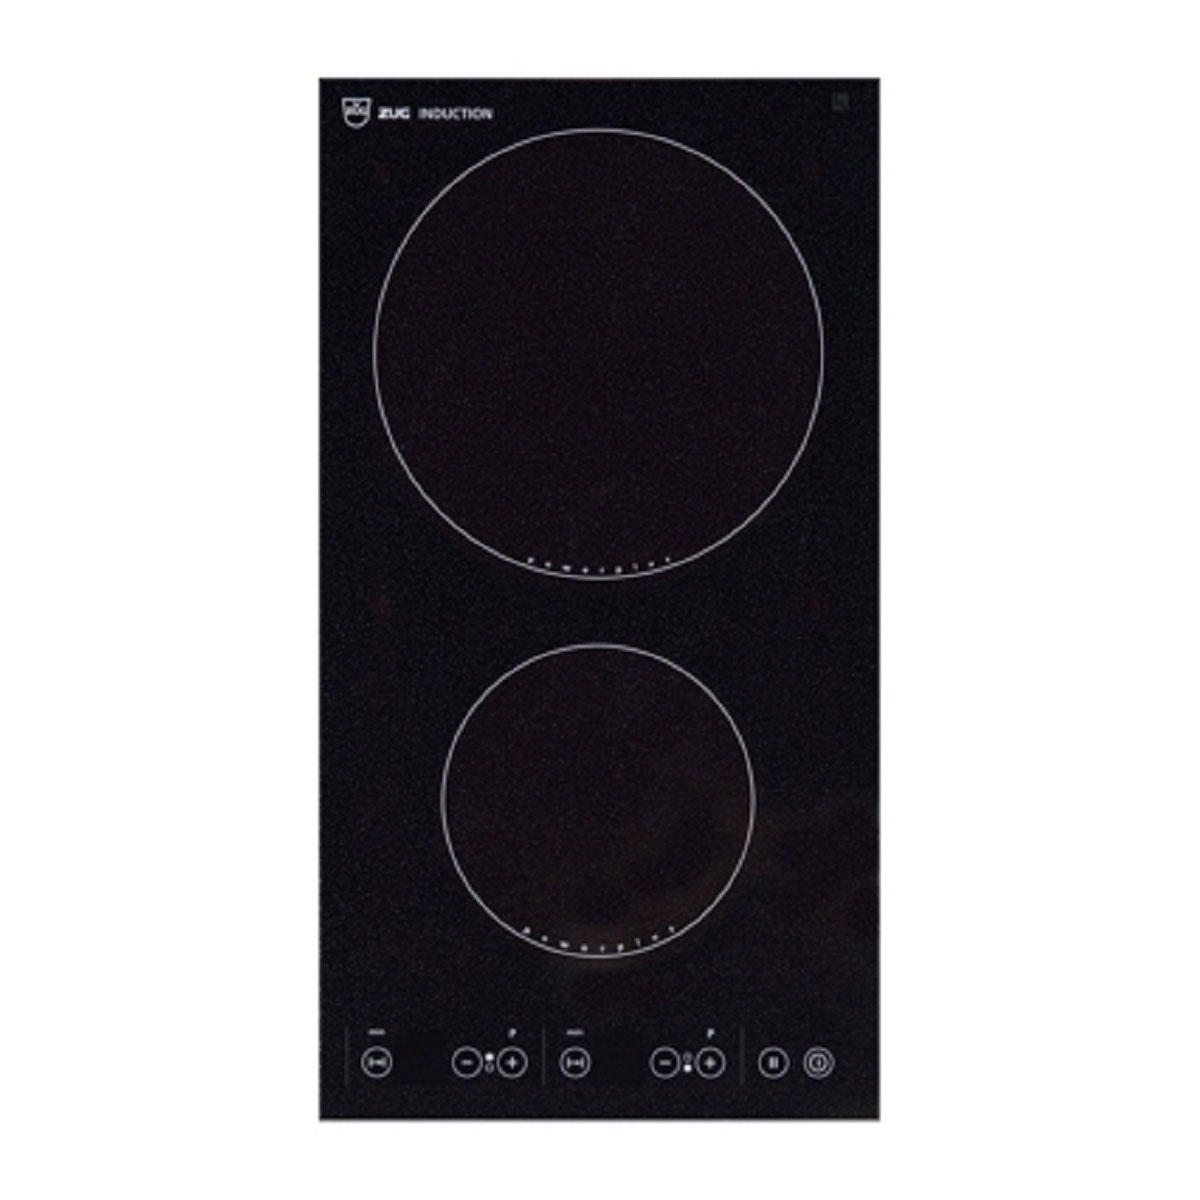 V-ZUG Induction Cooktops GK26TI